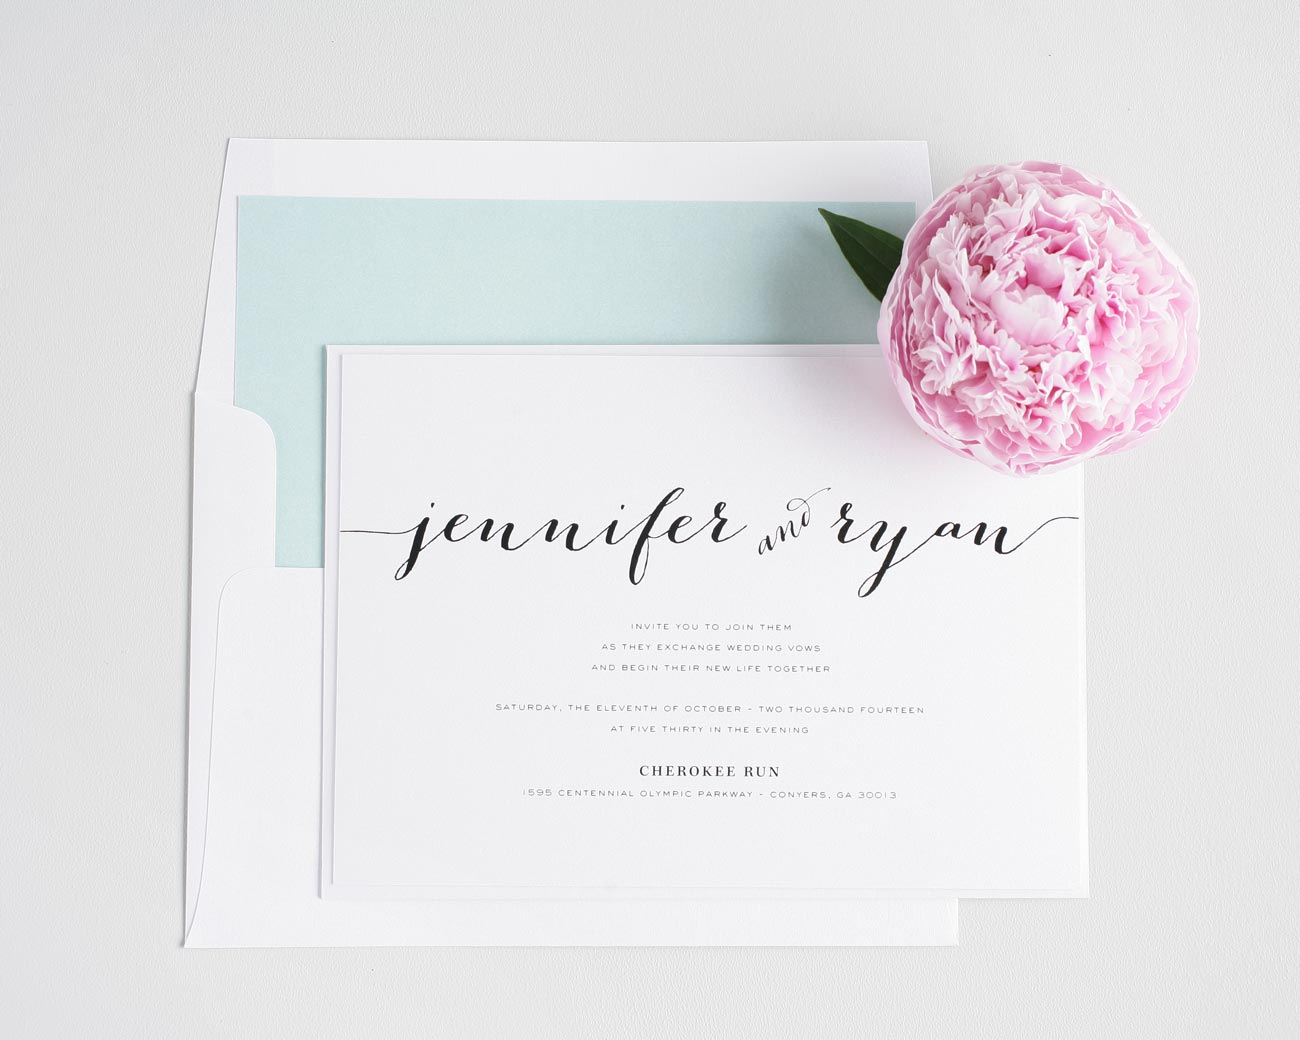 rustic script wedding invitations in mint – wedding invitations, Wedding invitations